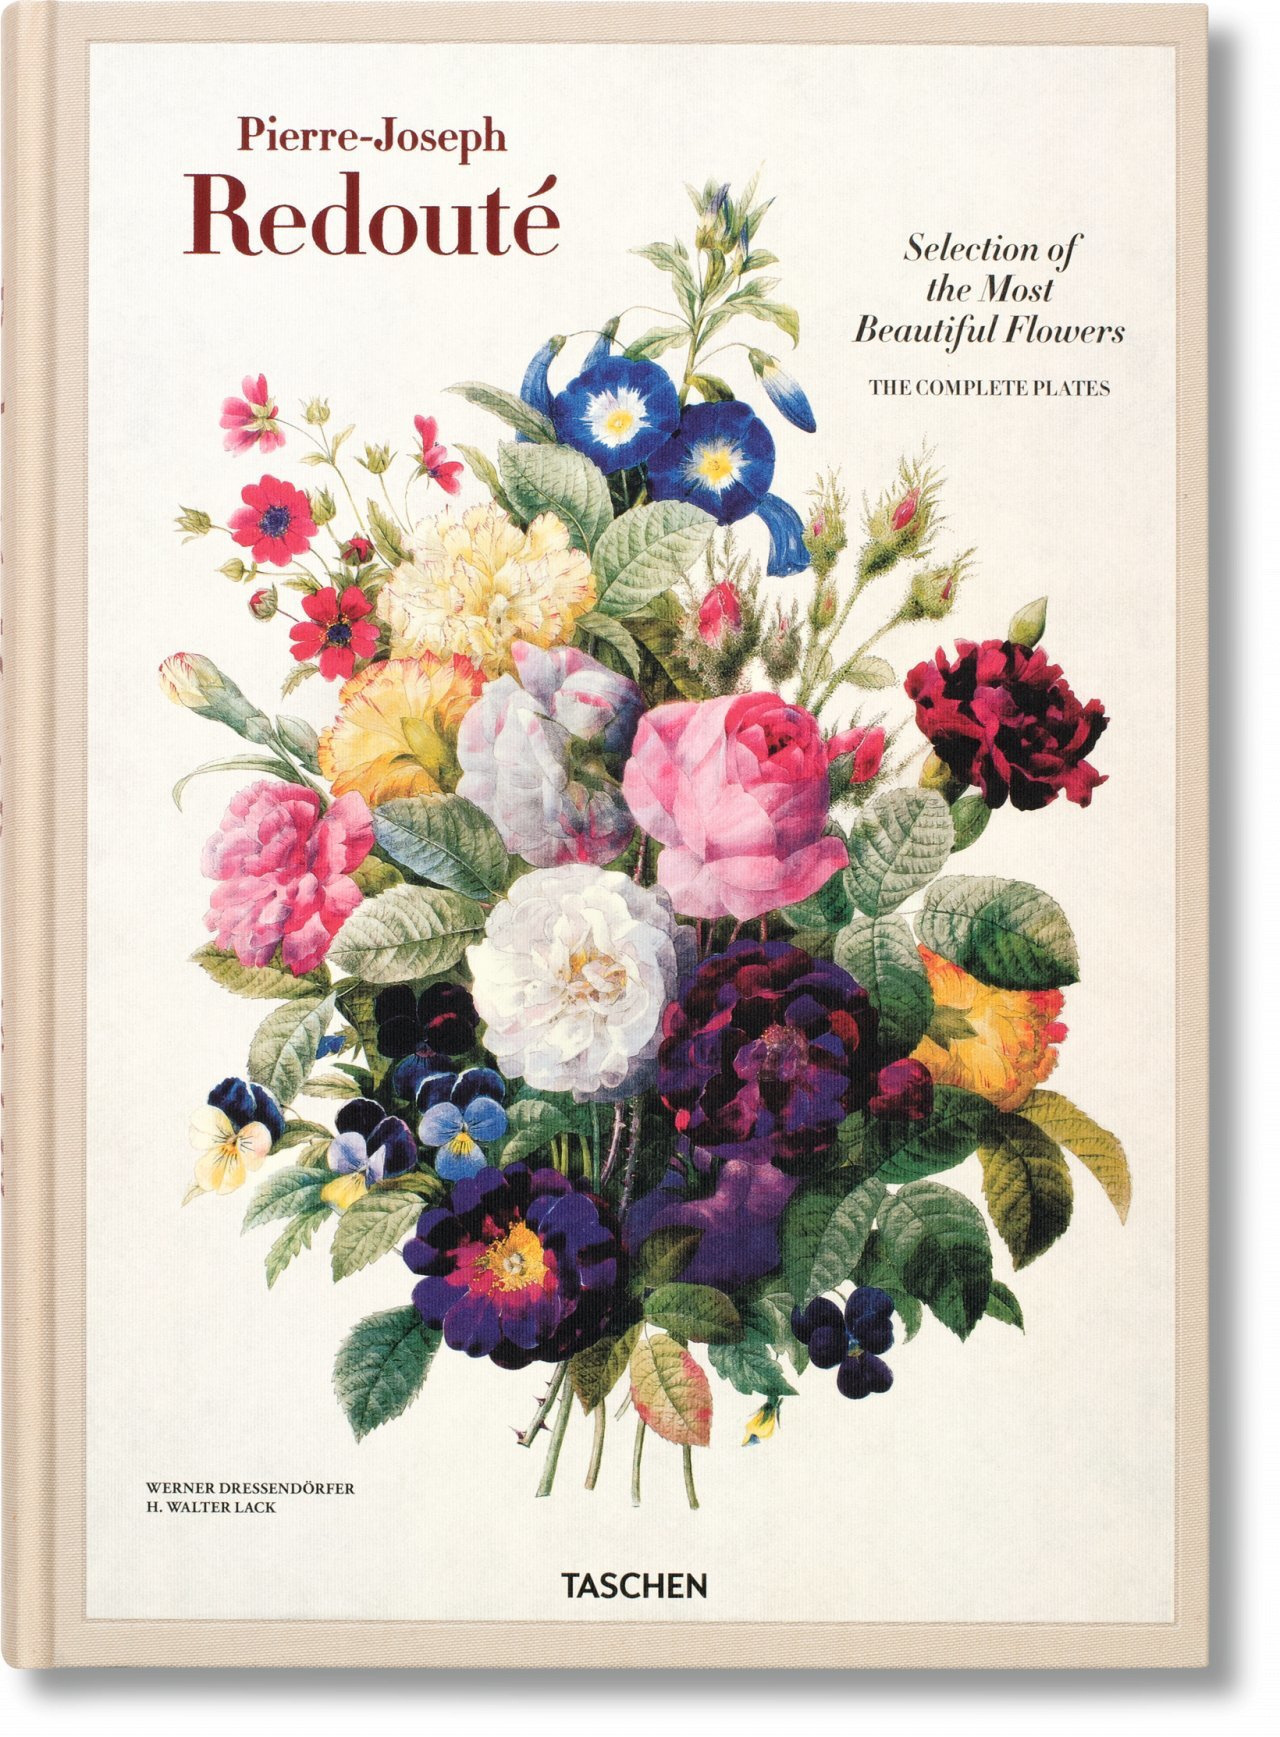 REDOUTE. SELECTION OF THE MOST BEAUTIFUL FLOWERS - REDOUTE, BELLES FLEURS-TRILINGUE